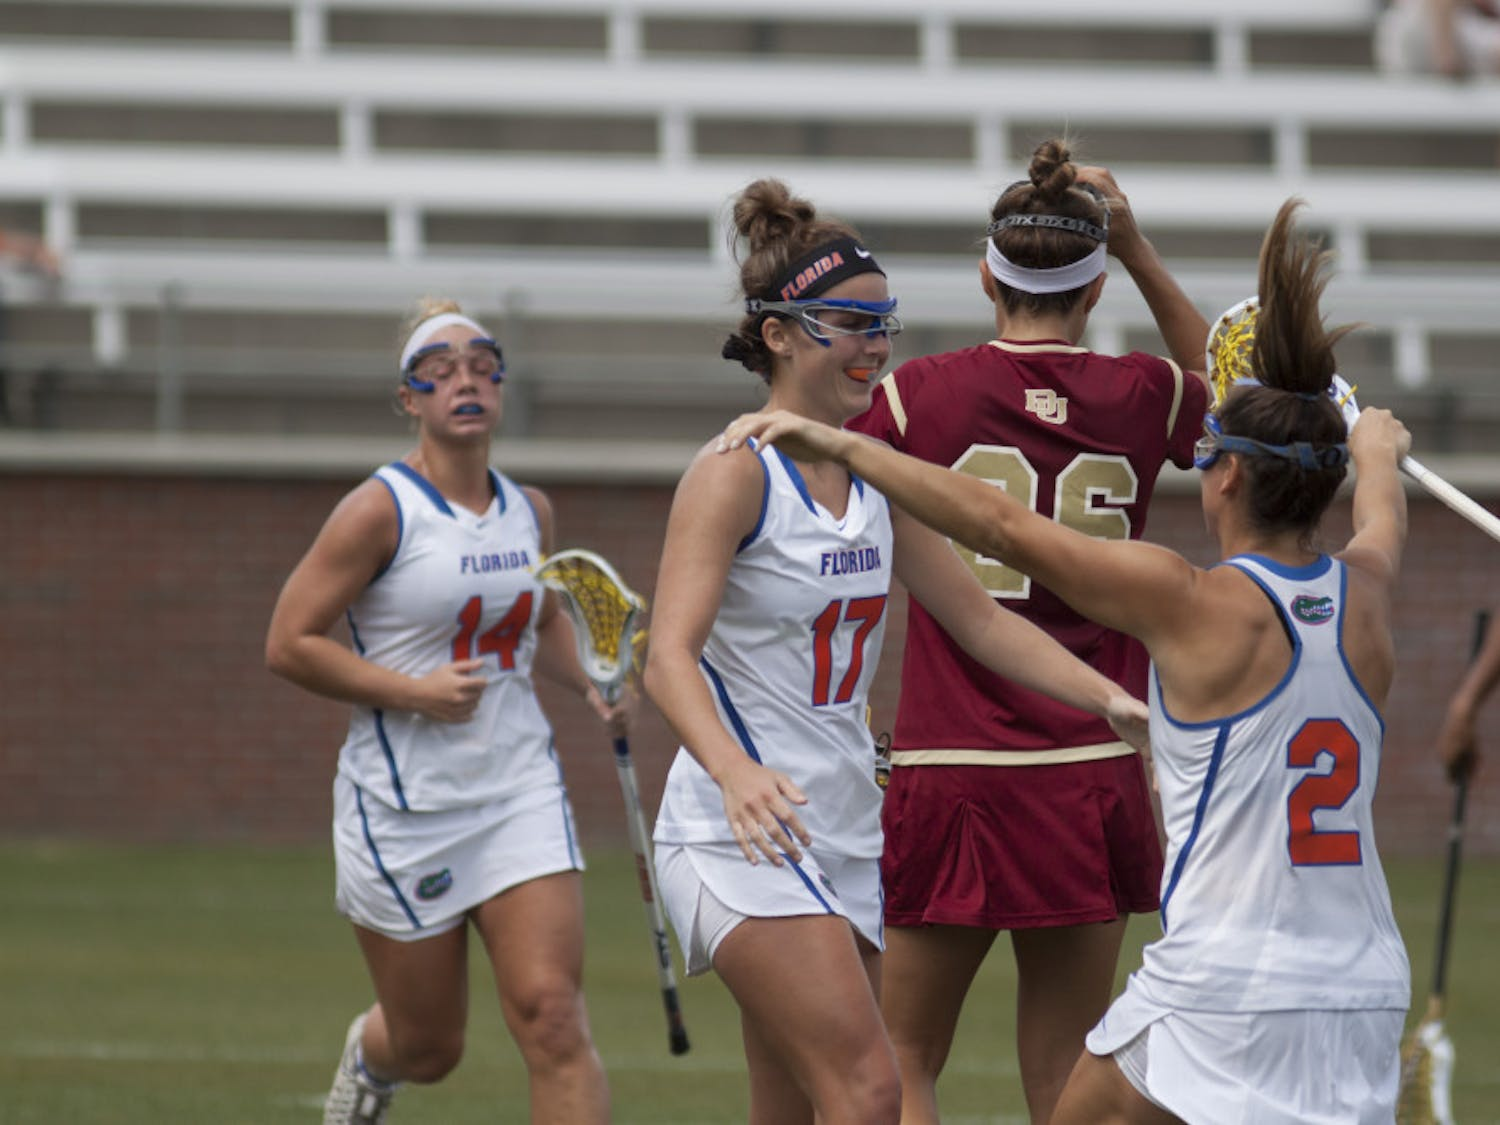 Mollie Stevens (17) and Sammi Burgess (2) embrace during Florida's 15-8 win against Denver on March 25, 2017, at Donald R. Dizney Stadium.